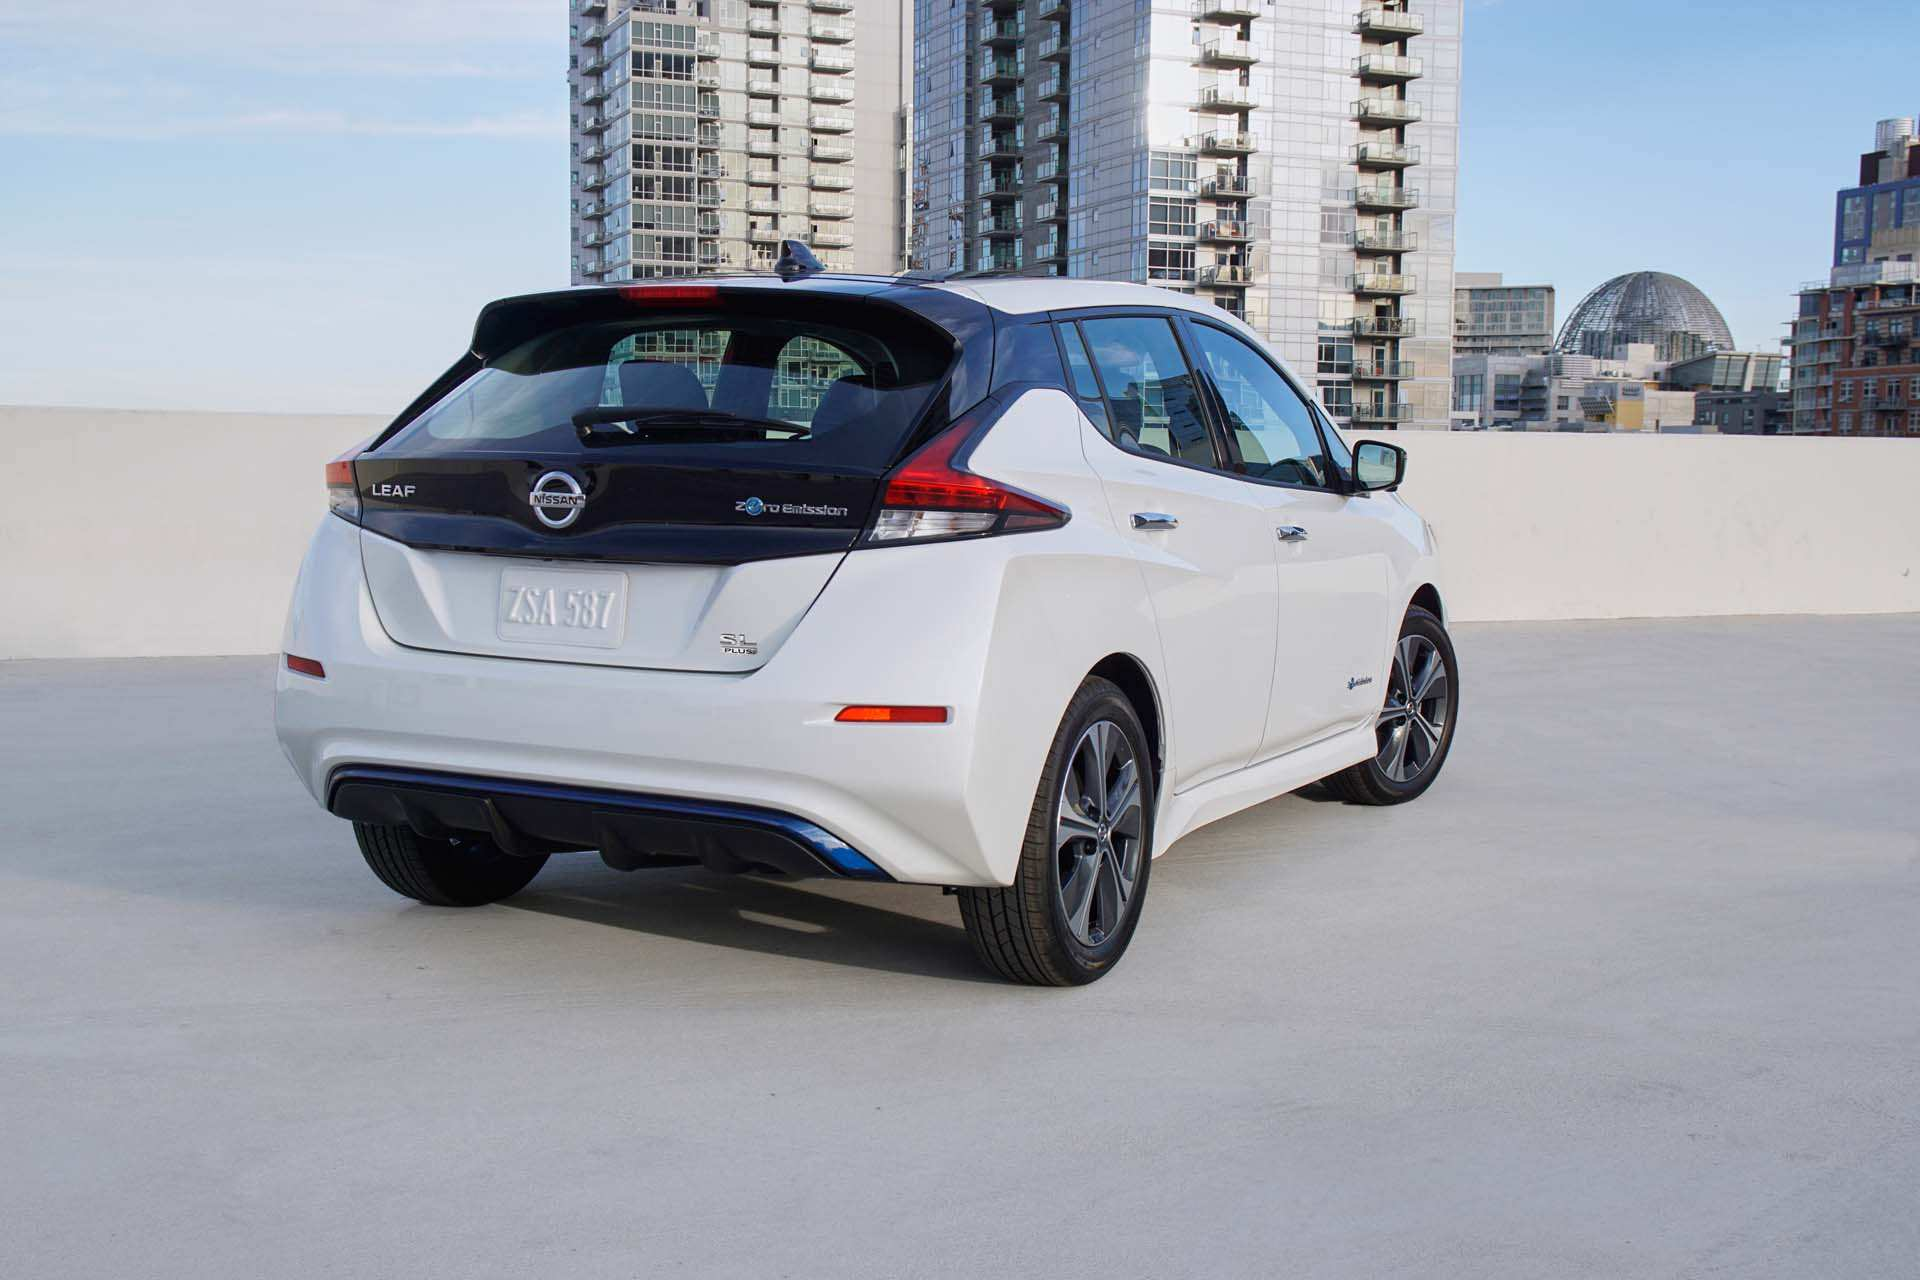 89 All New 2020 Nissan Leaf Range Photos